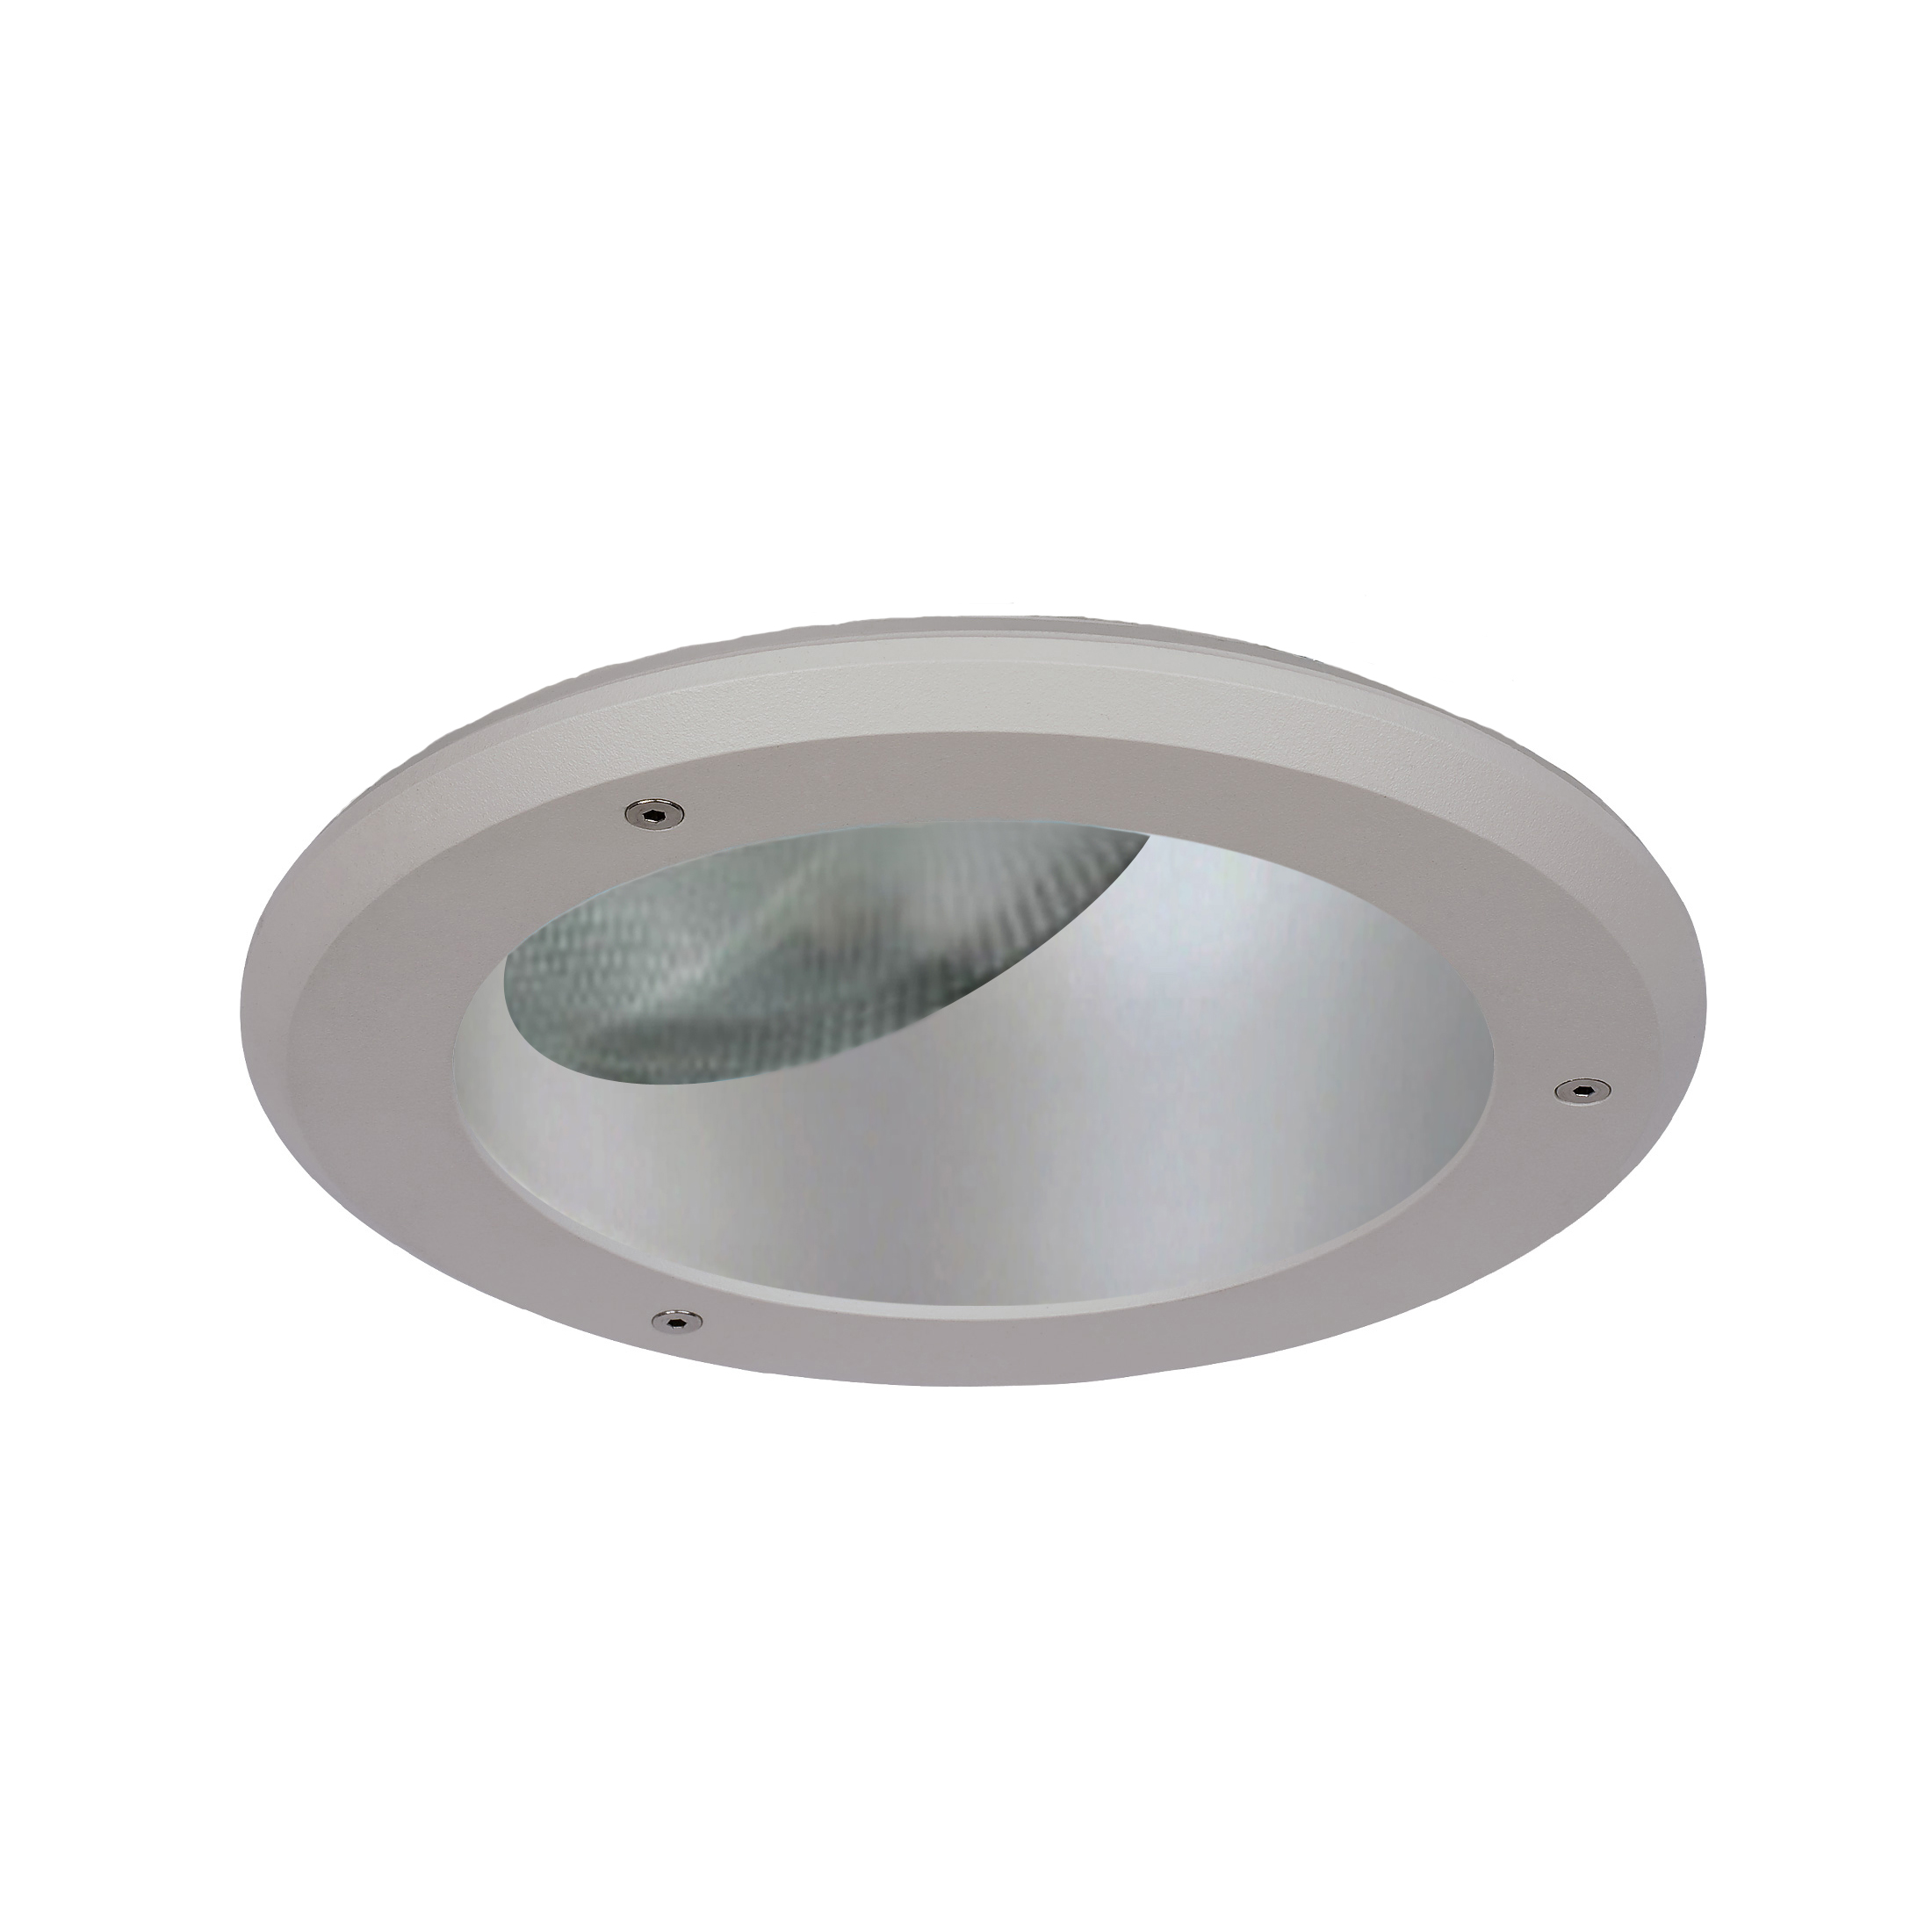 Recessed ceiling light ip67 liton lighting 6 wall wash aloadofball Image collections